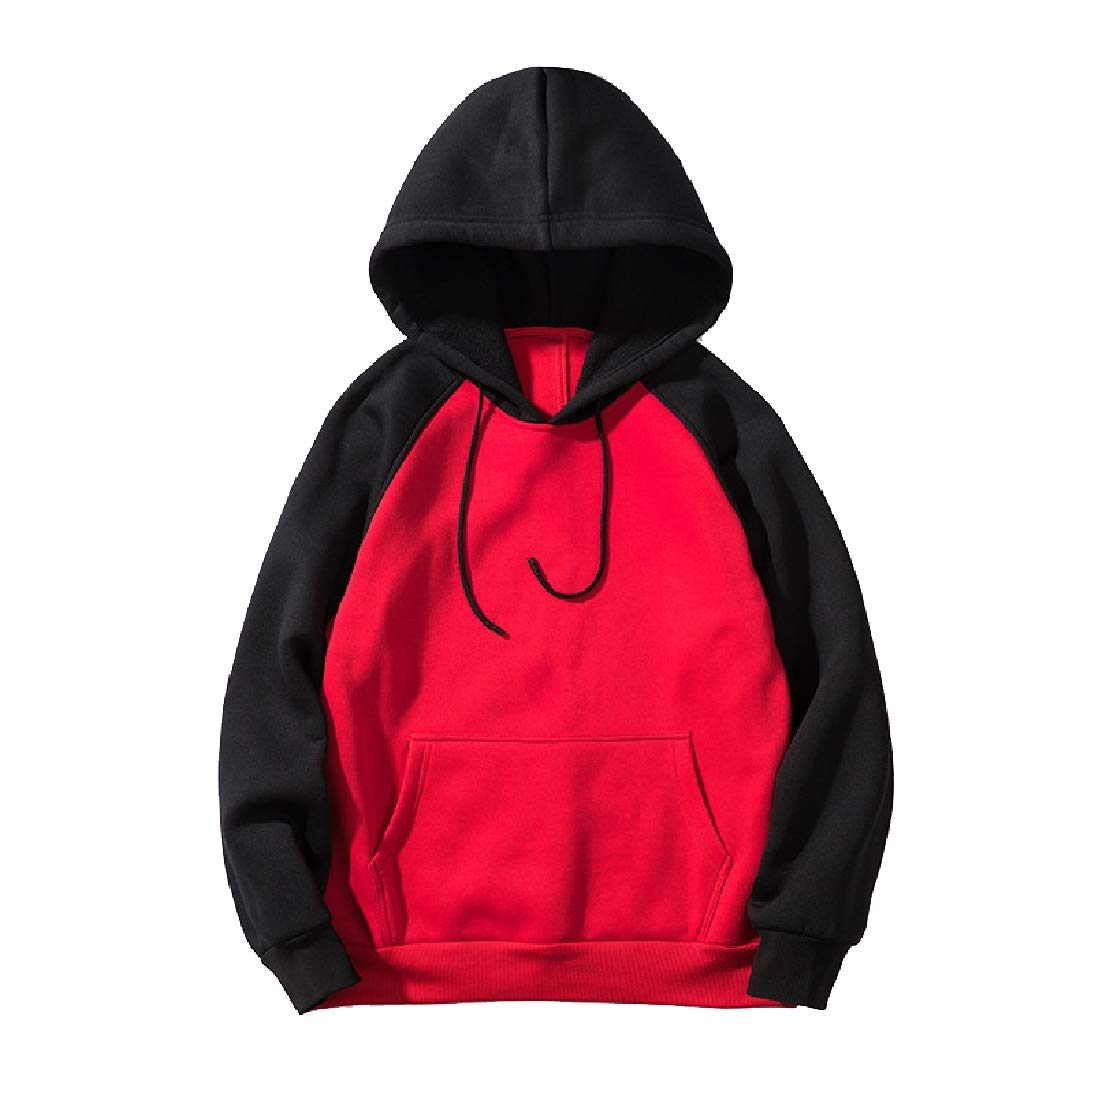 YUNY Mens Hooded Pullover Oversize Color Stitch Pullover Sweatshirt 4 XL